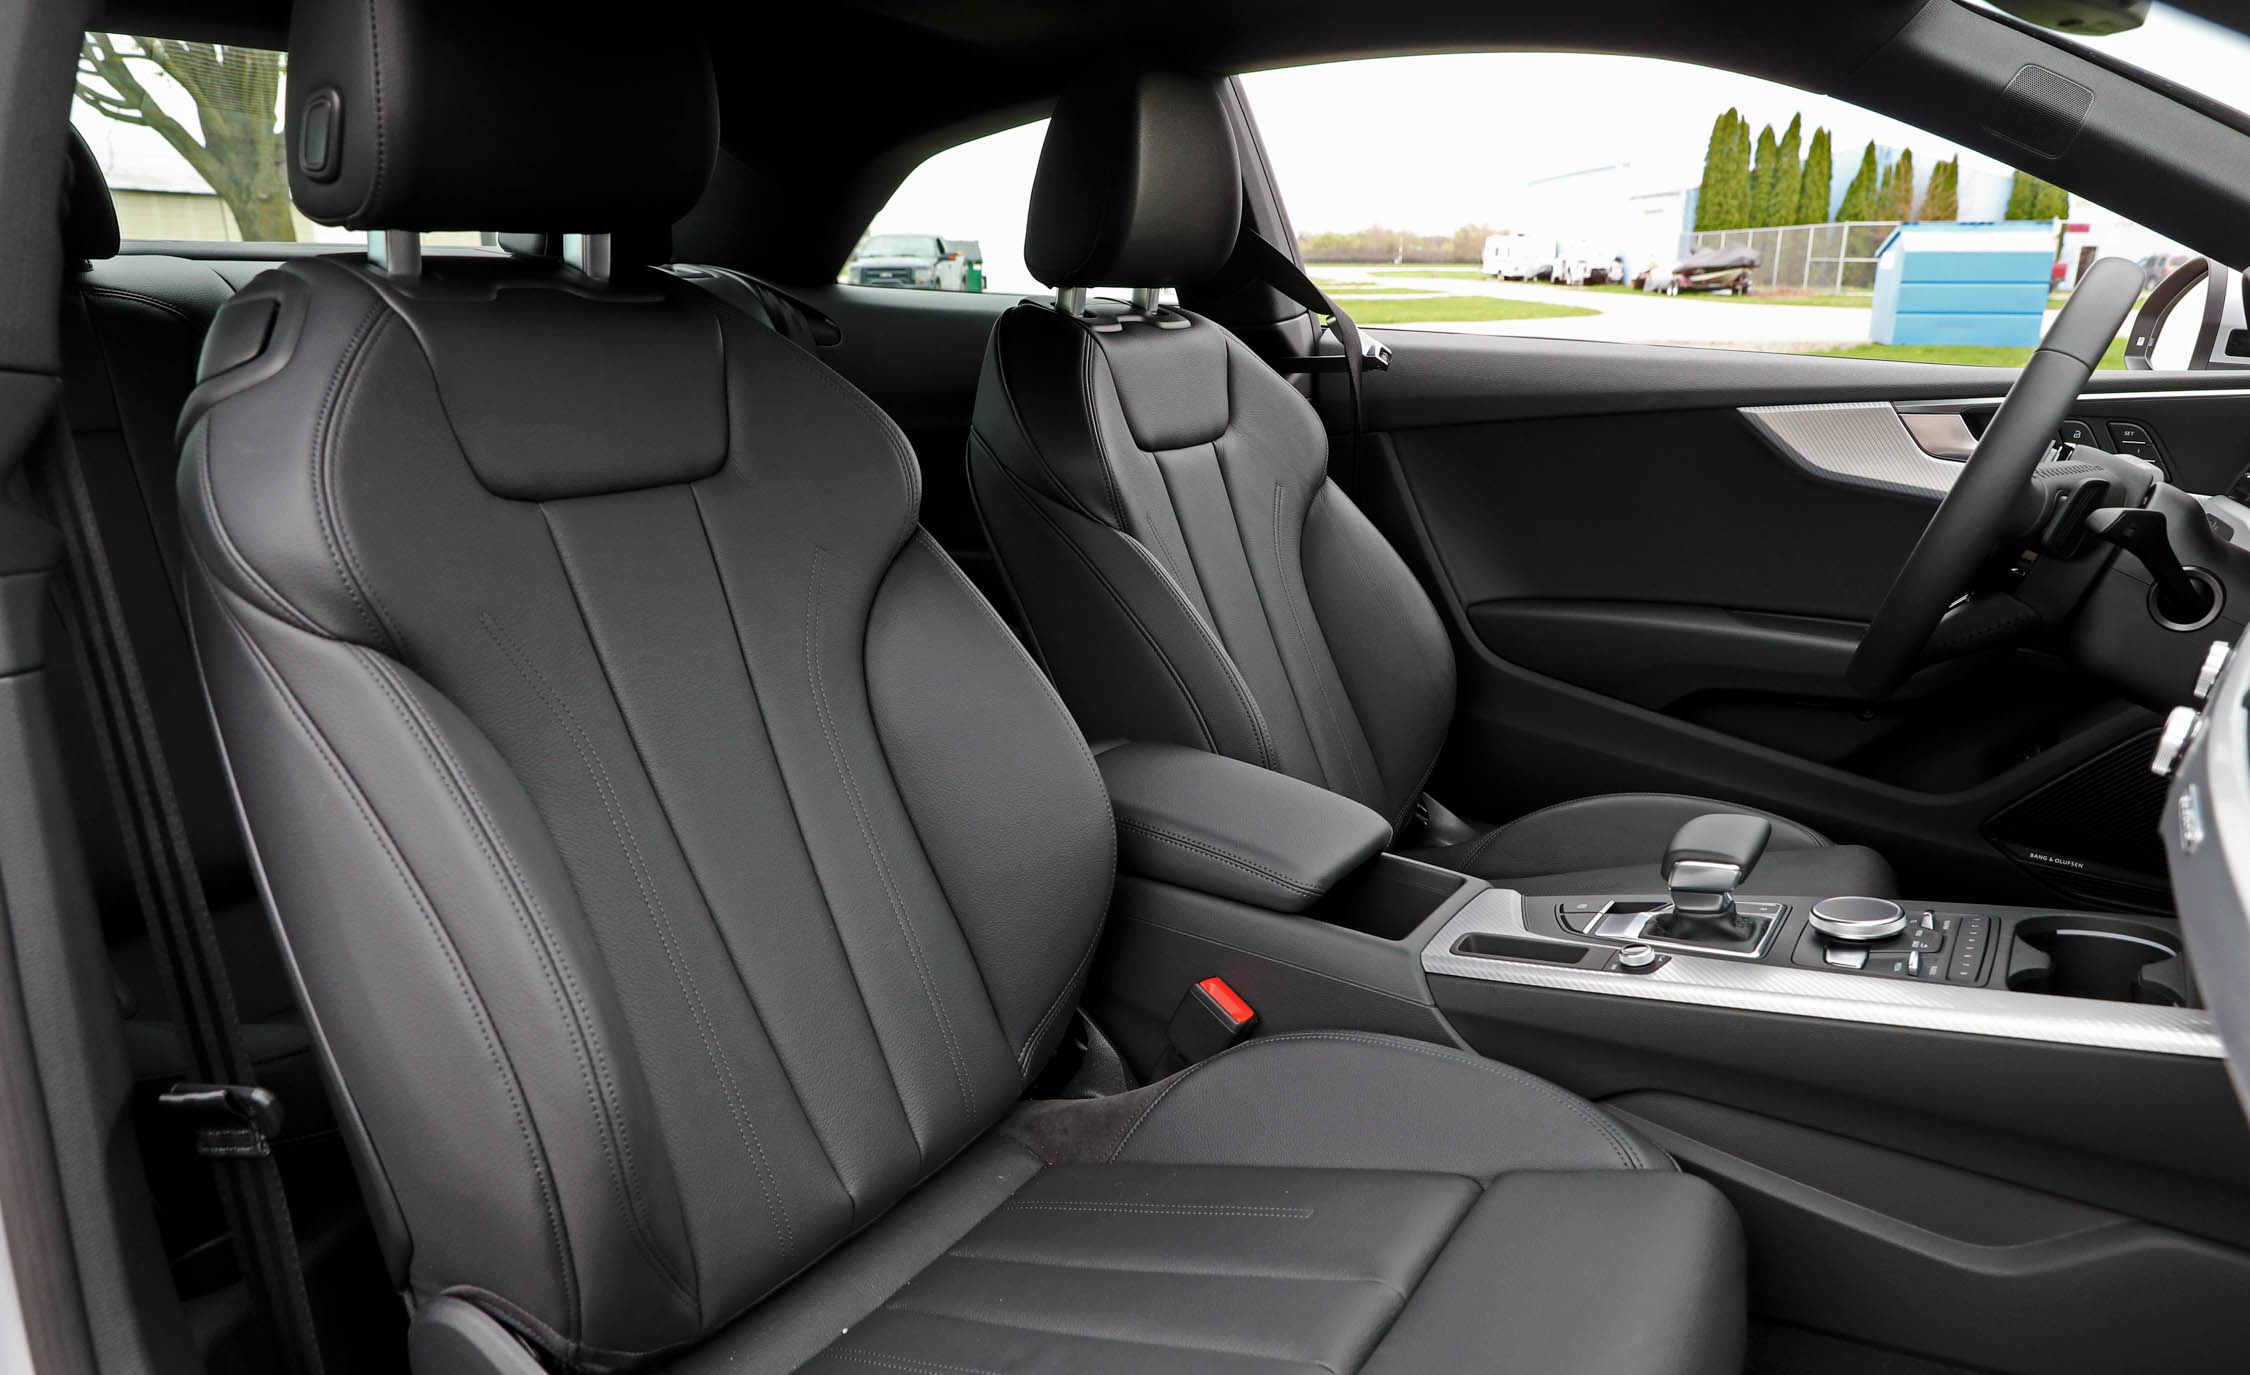 2018 Audi A5 Coupe Interior Seats (Photo 25 of 50)